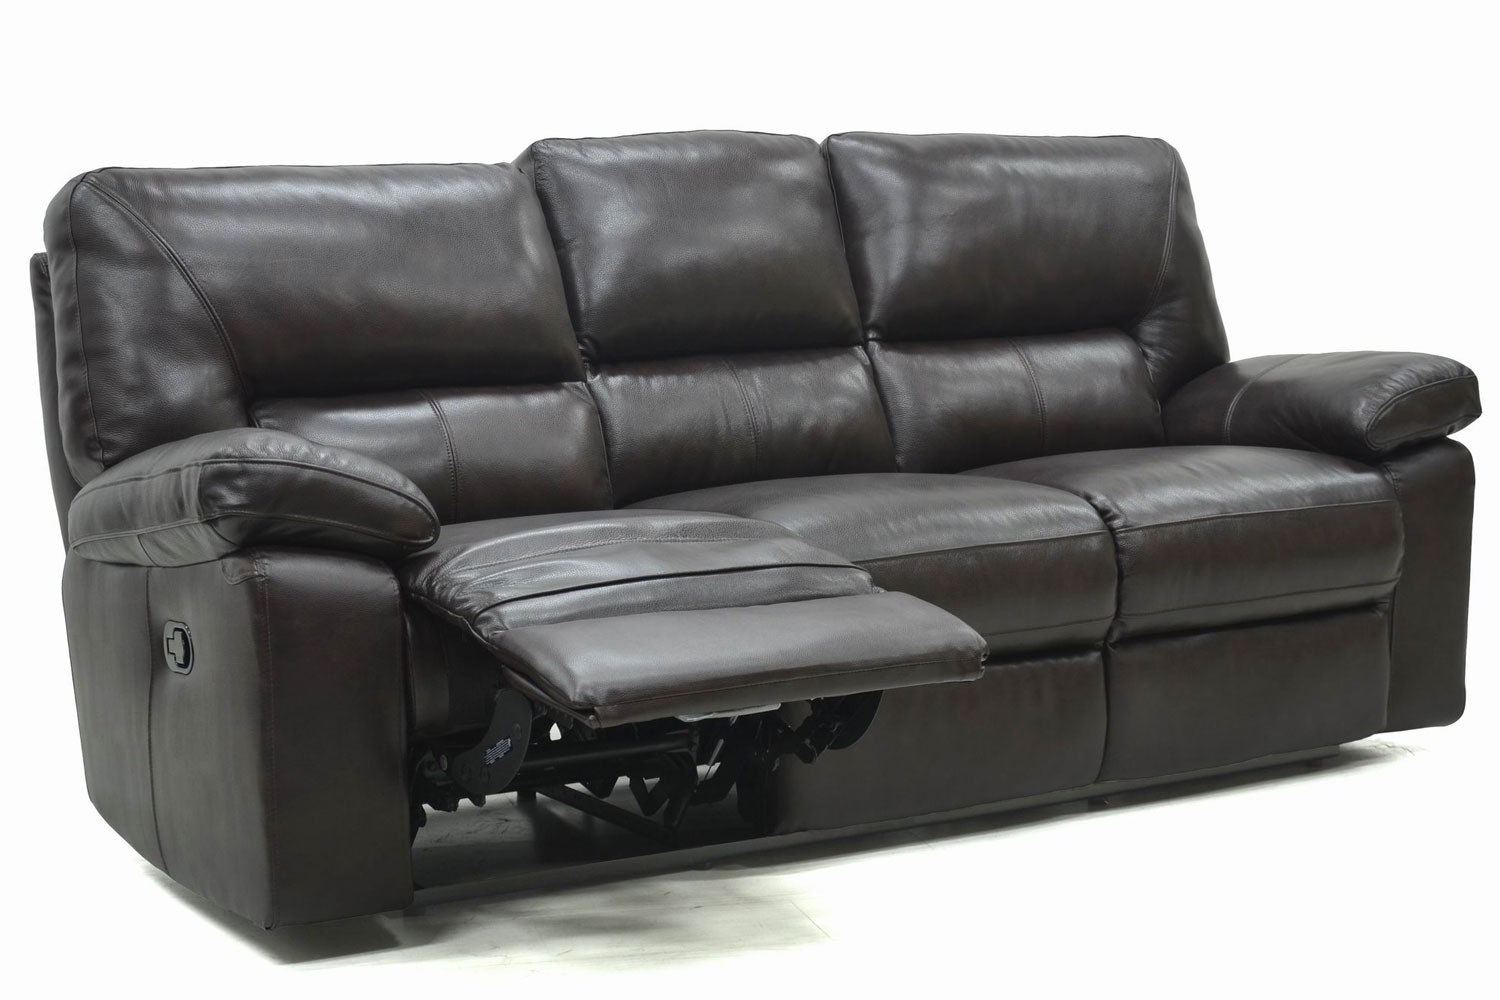 Cala 3-Seater Leather Recliner Sofa